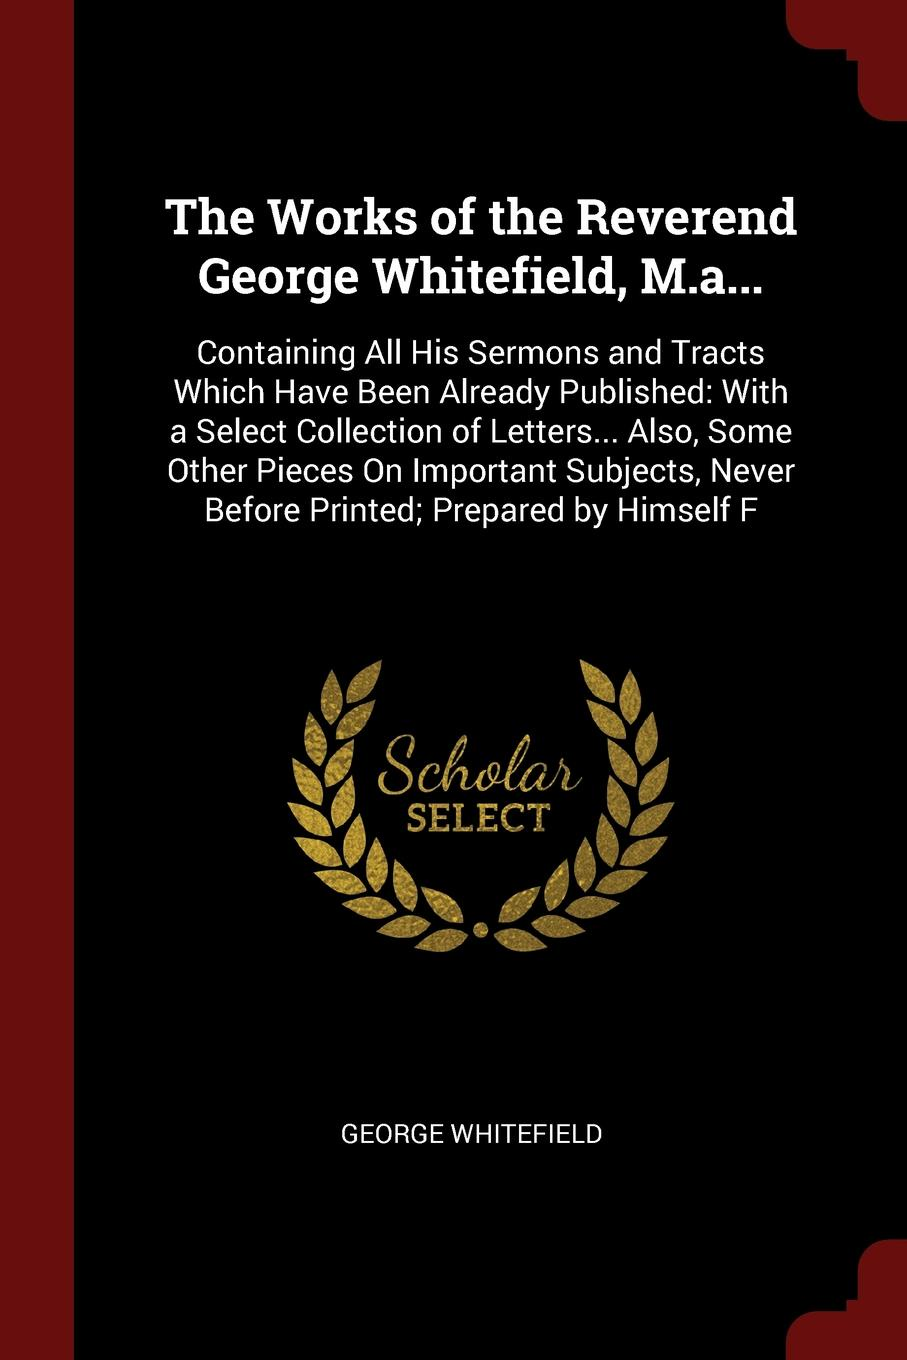 The Works of the Reverend George Whitefield, M.a... Containing All His Sermons and Tracts Which Have Been Already Published: With a Select Collection of Letters... Also, Some Other Pieces On Important Subjects, Never Before Printed; Prepared by Hi...